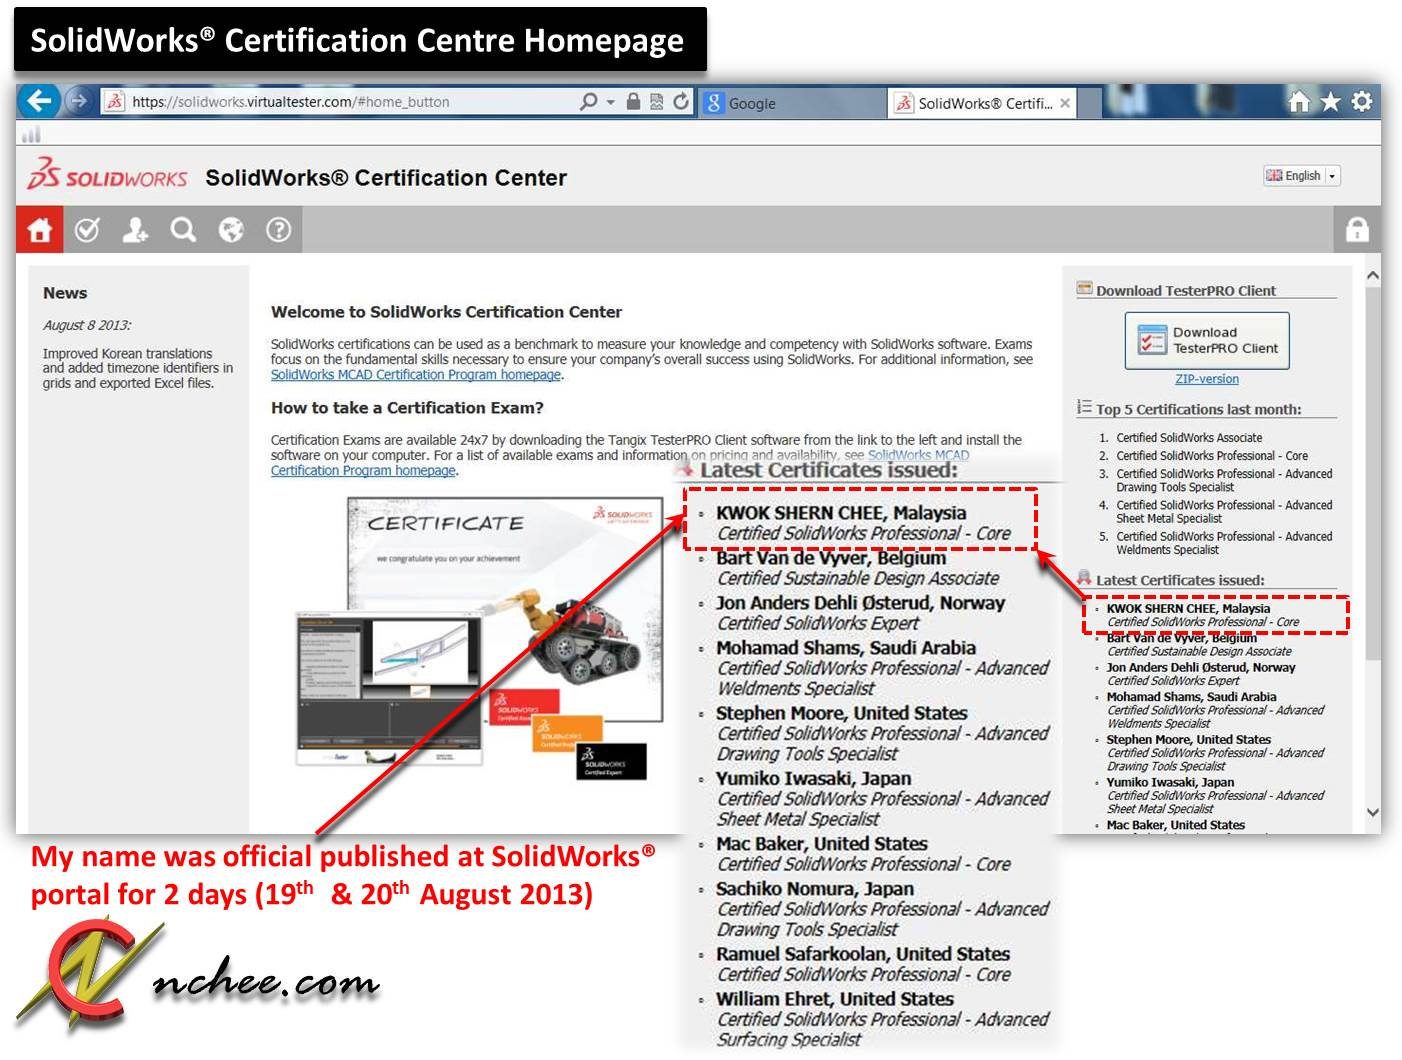 Certified SolidWorks® Professional in Mechanical Design | NCHEE Life ...